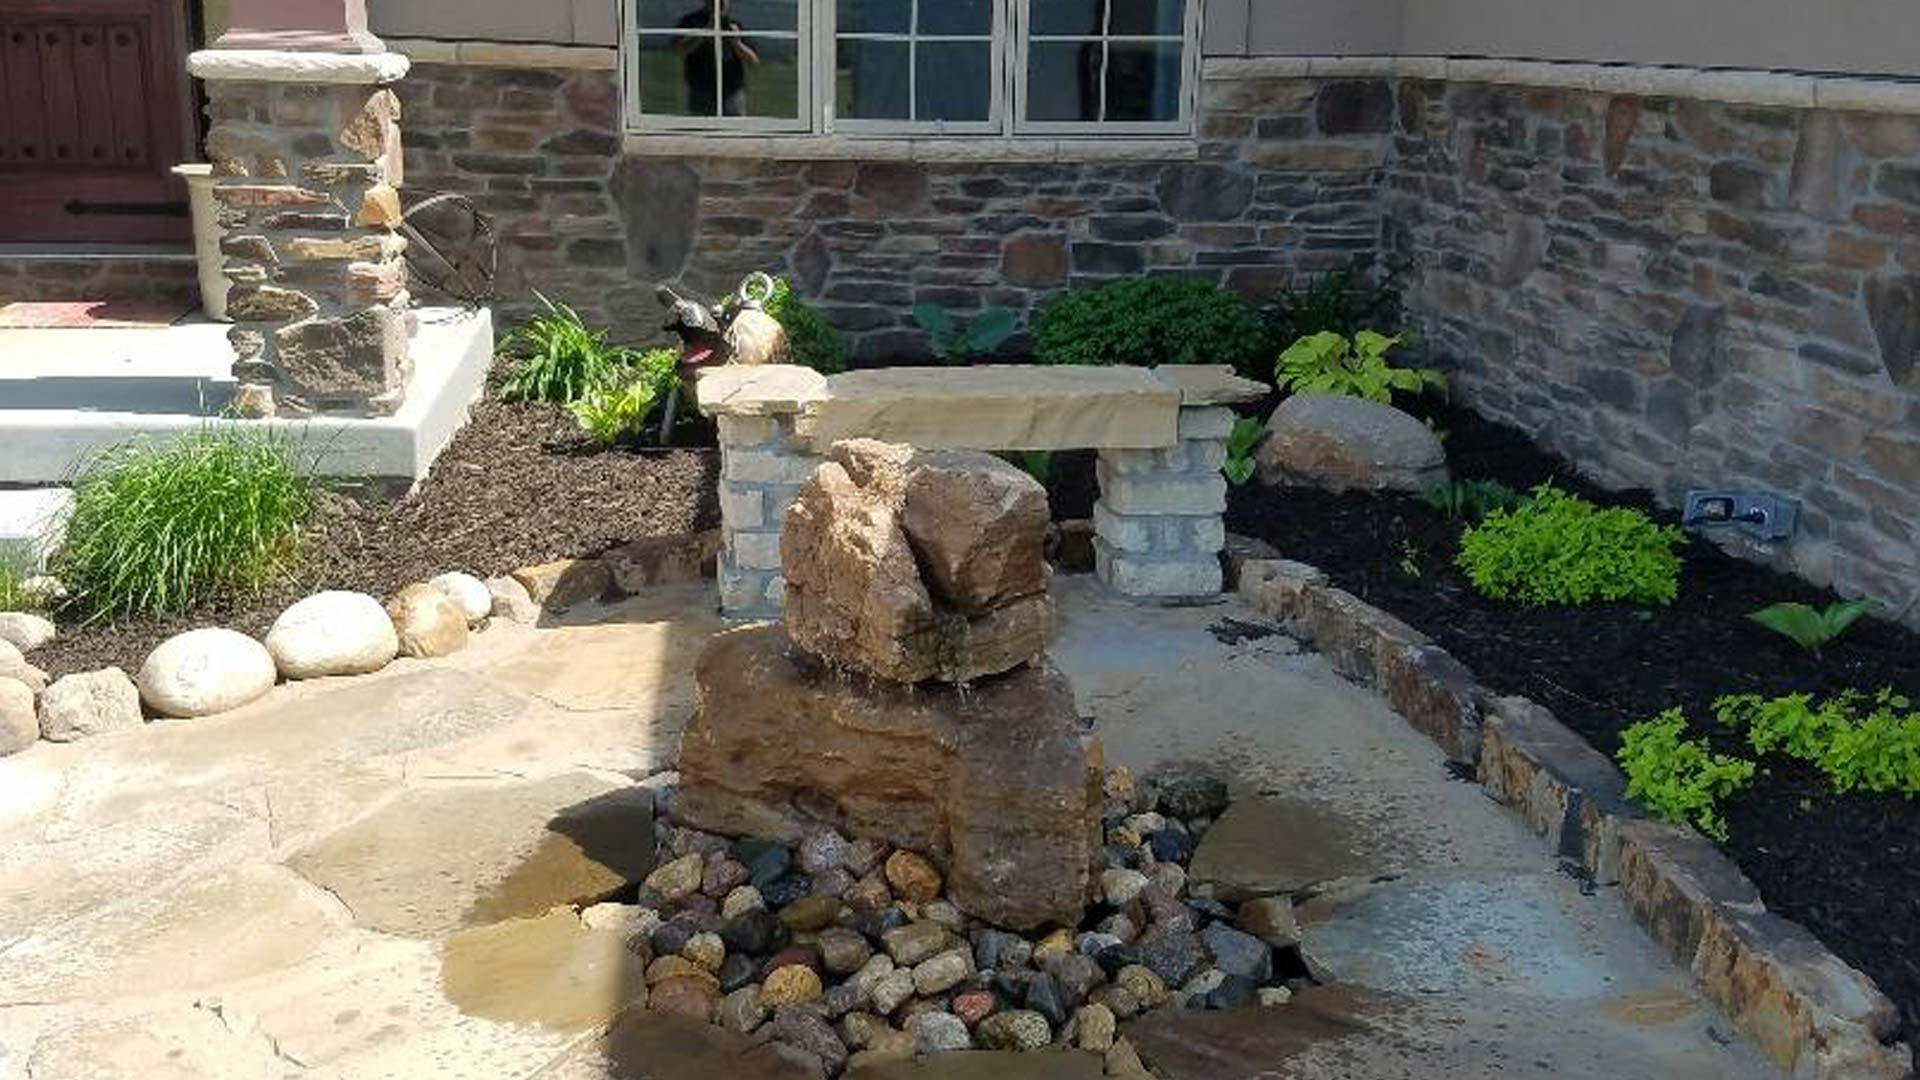 Landscaping installed in front of a home in Lincoln with a water feature as a focus.